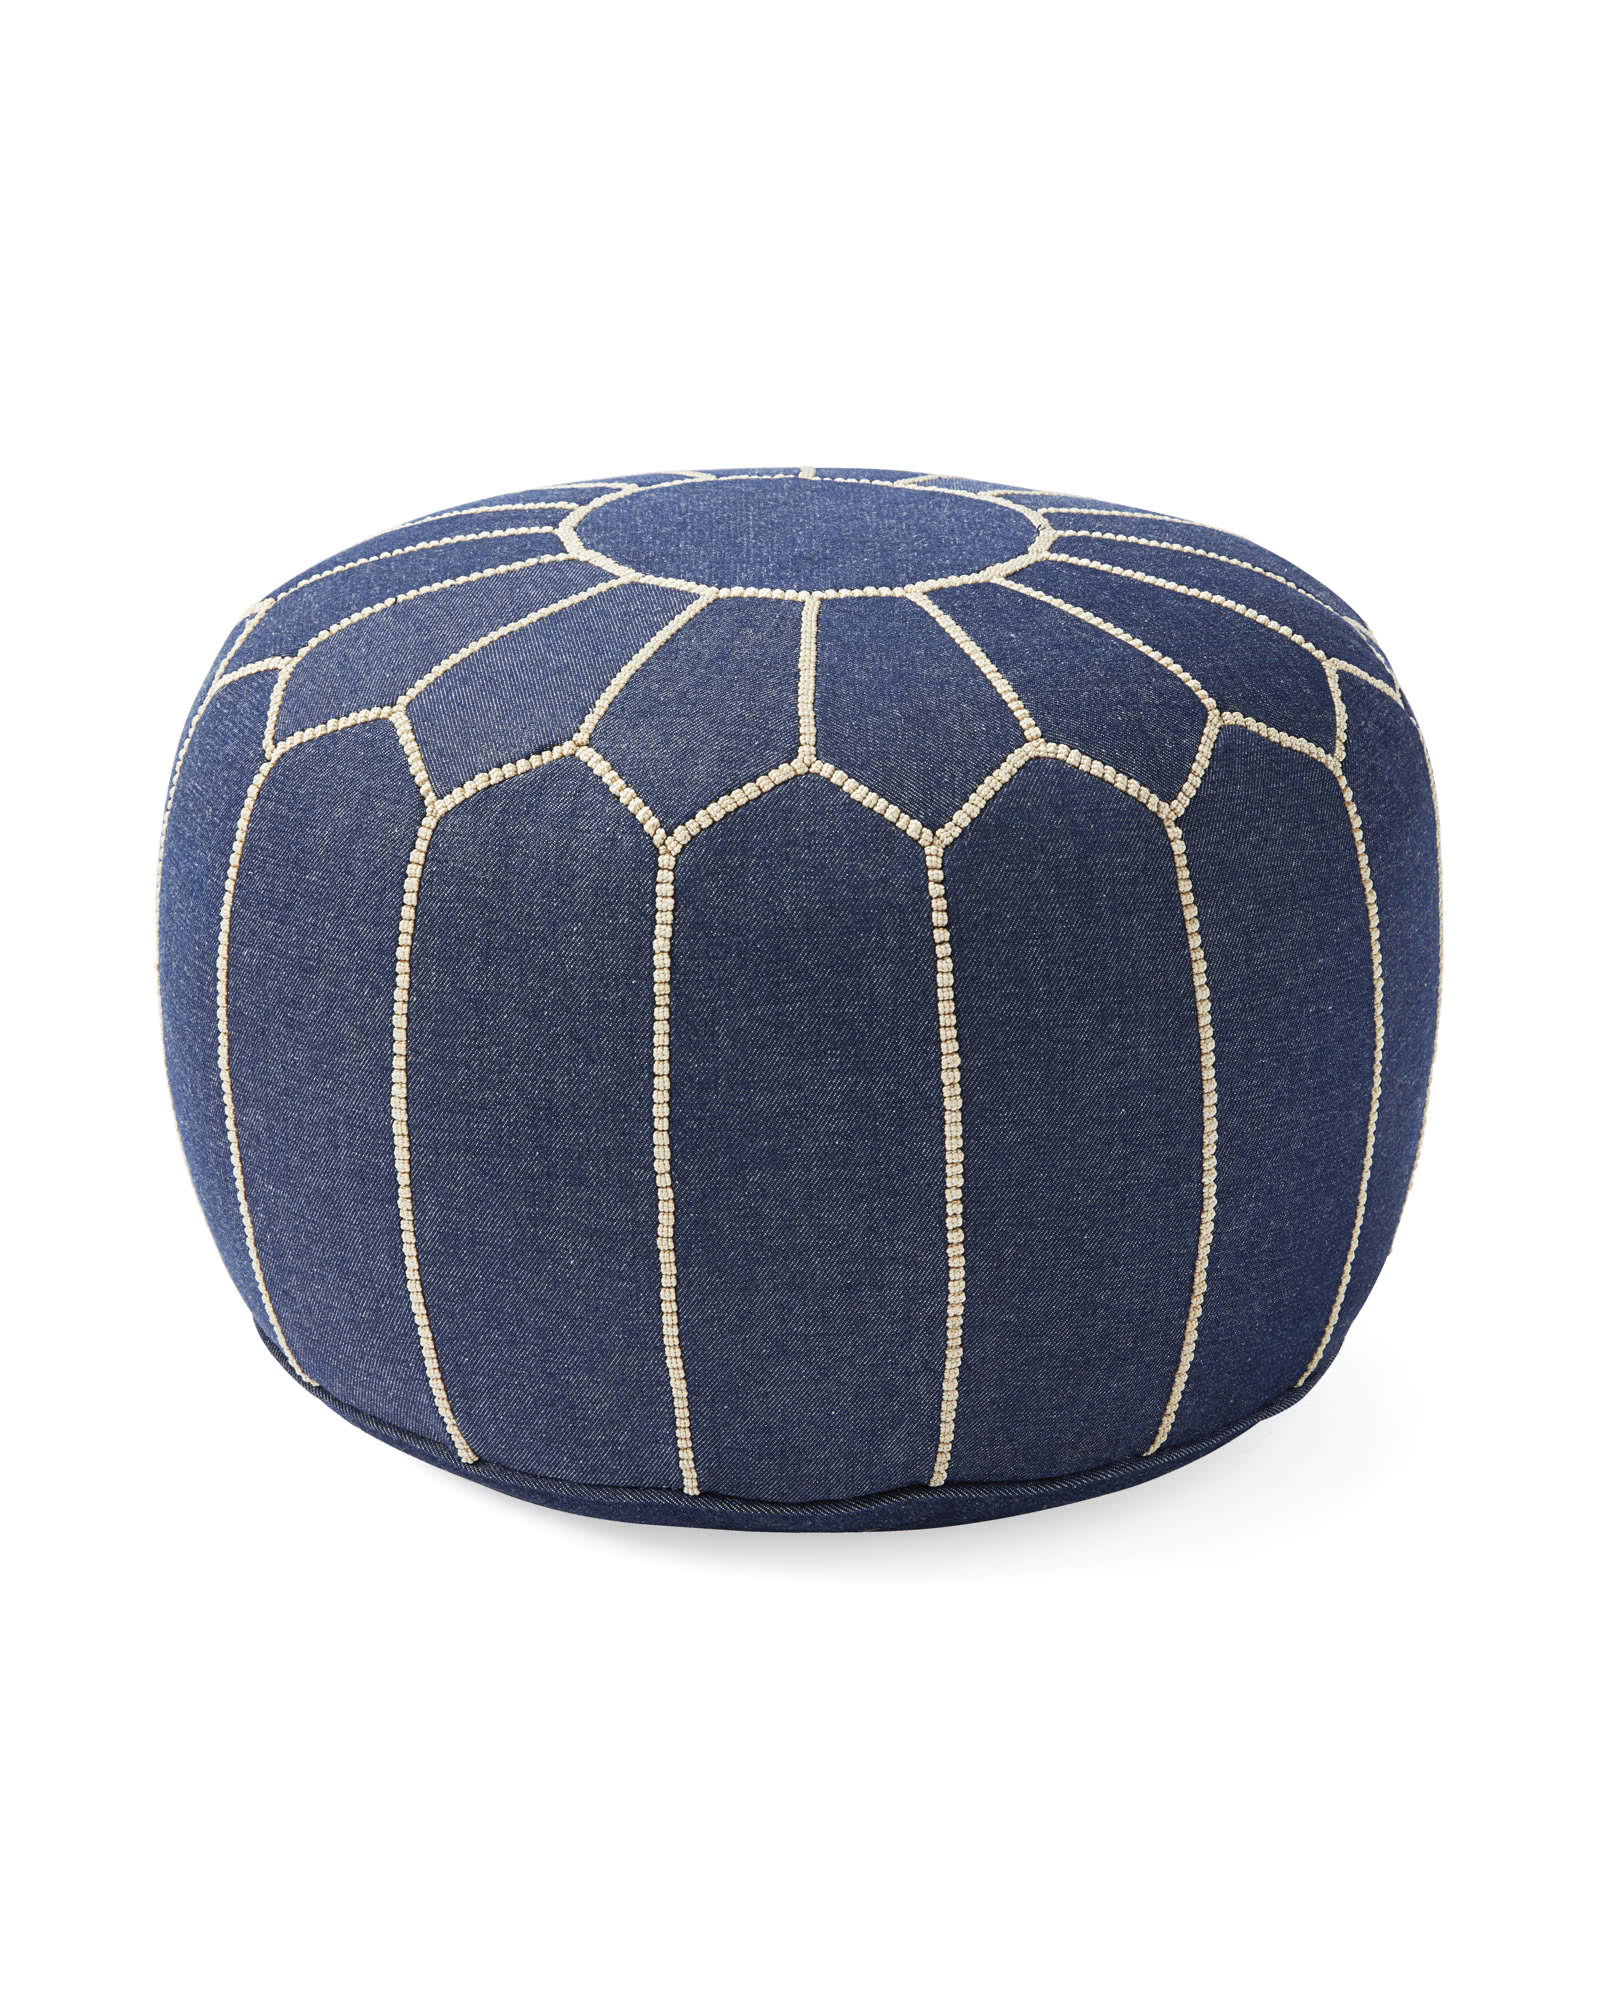 Moroccan Pouf, Denim